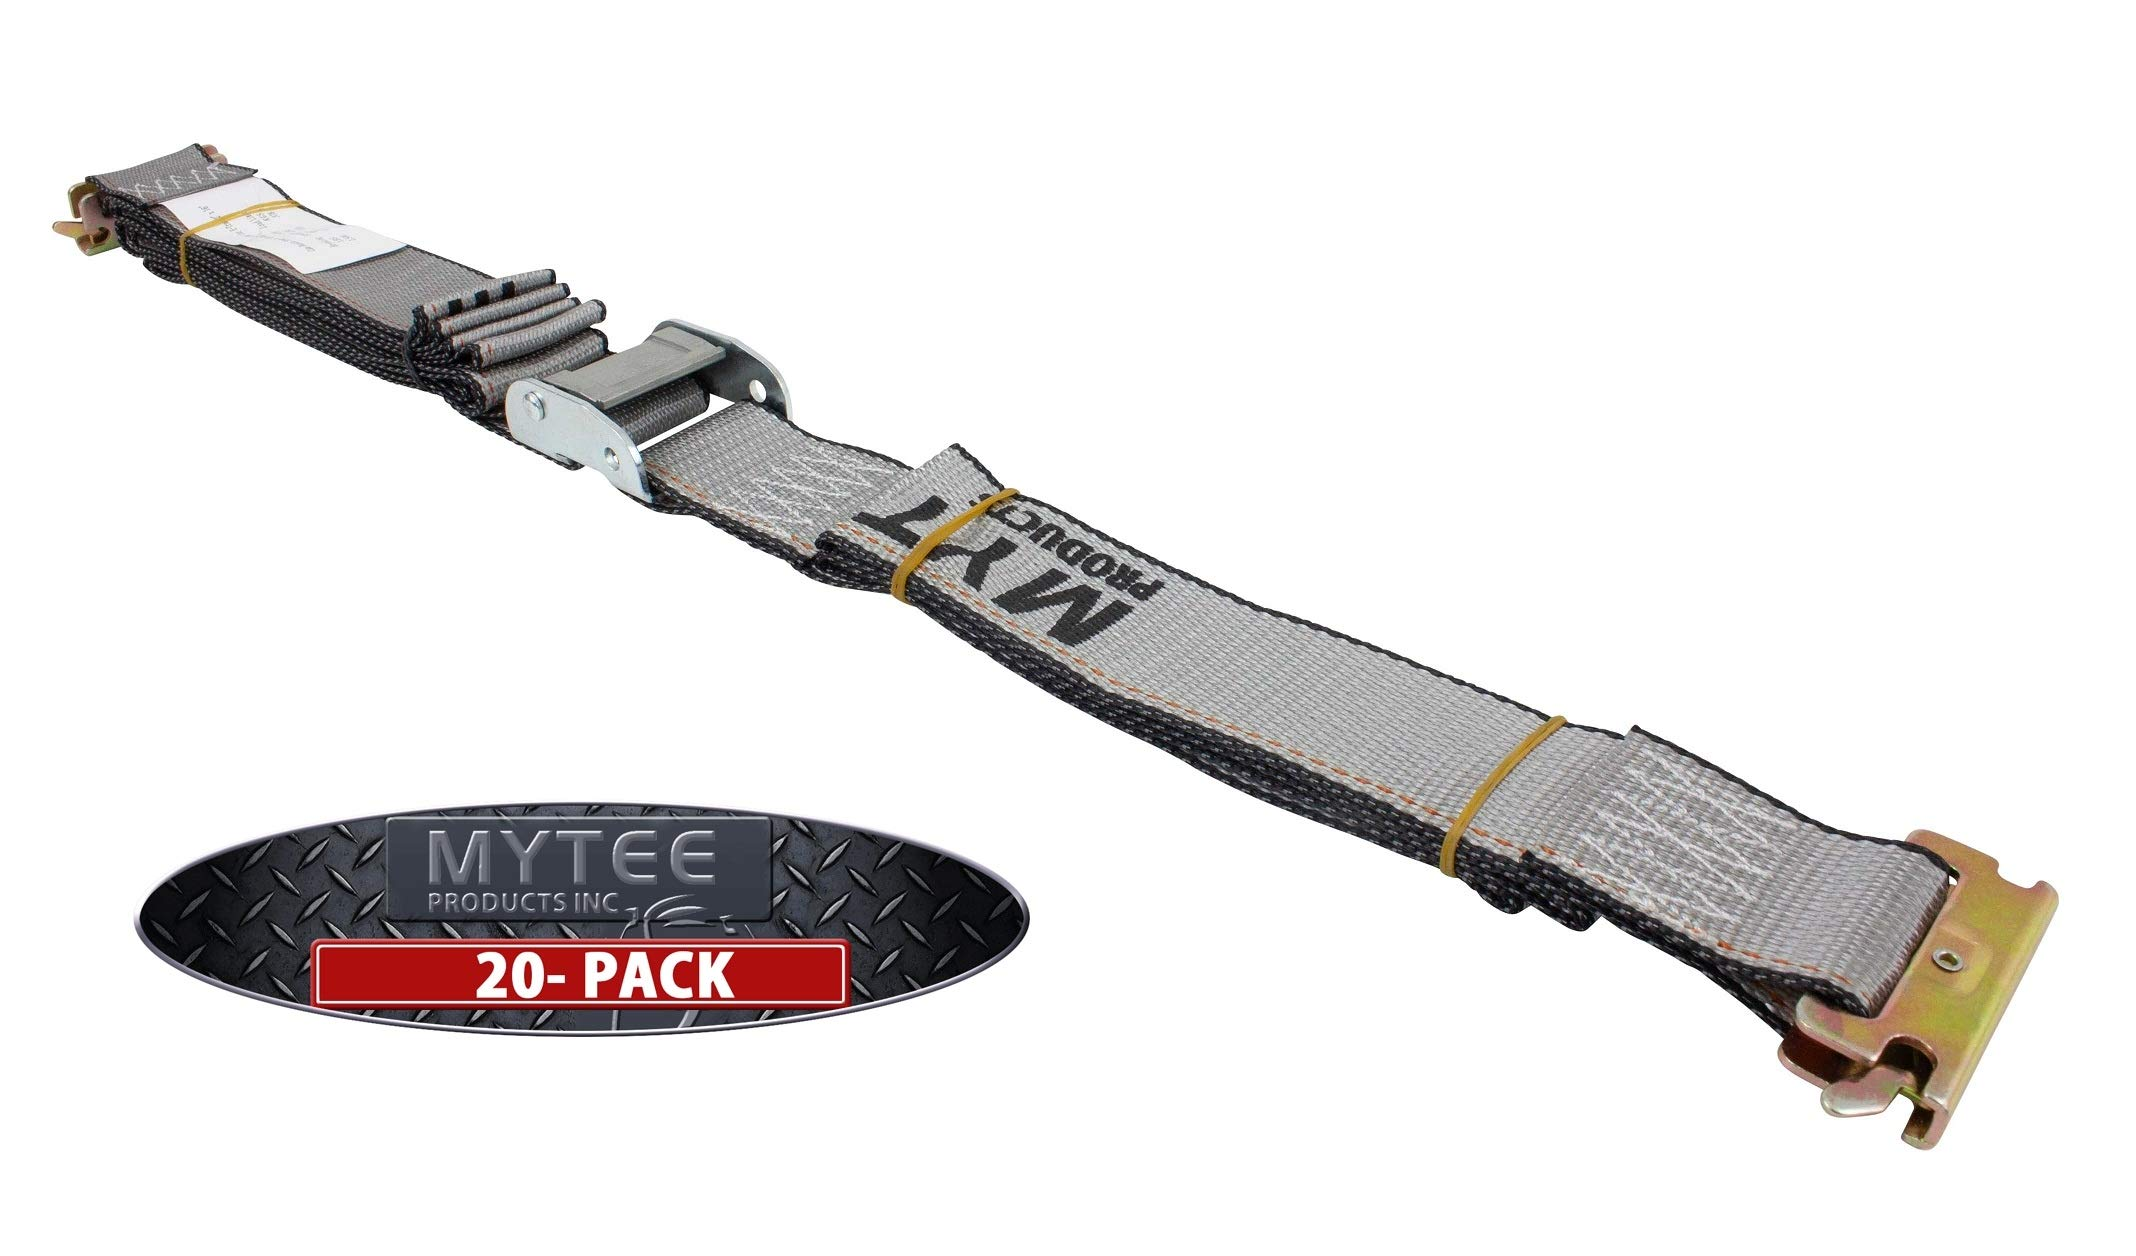 Mytee Products (20 Pack) E Track Cam Buckle Straps 2'' x 16' Logistics Strap Van Cargo Trailer